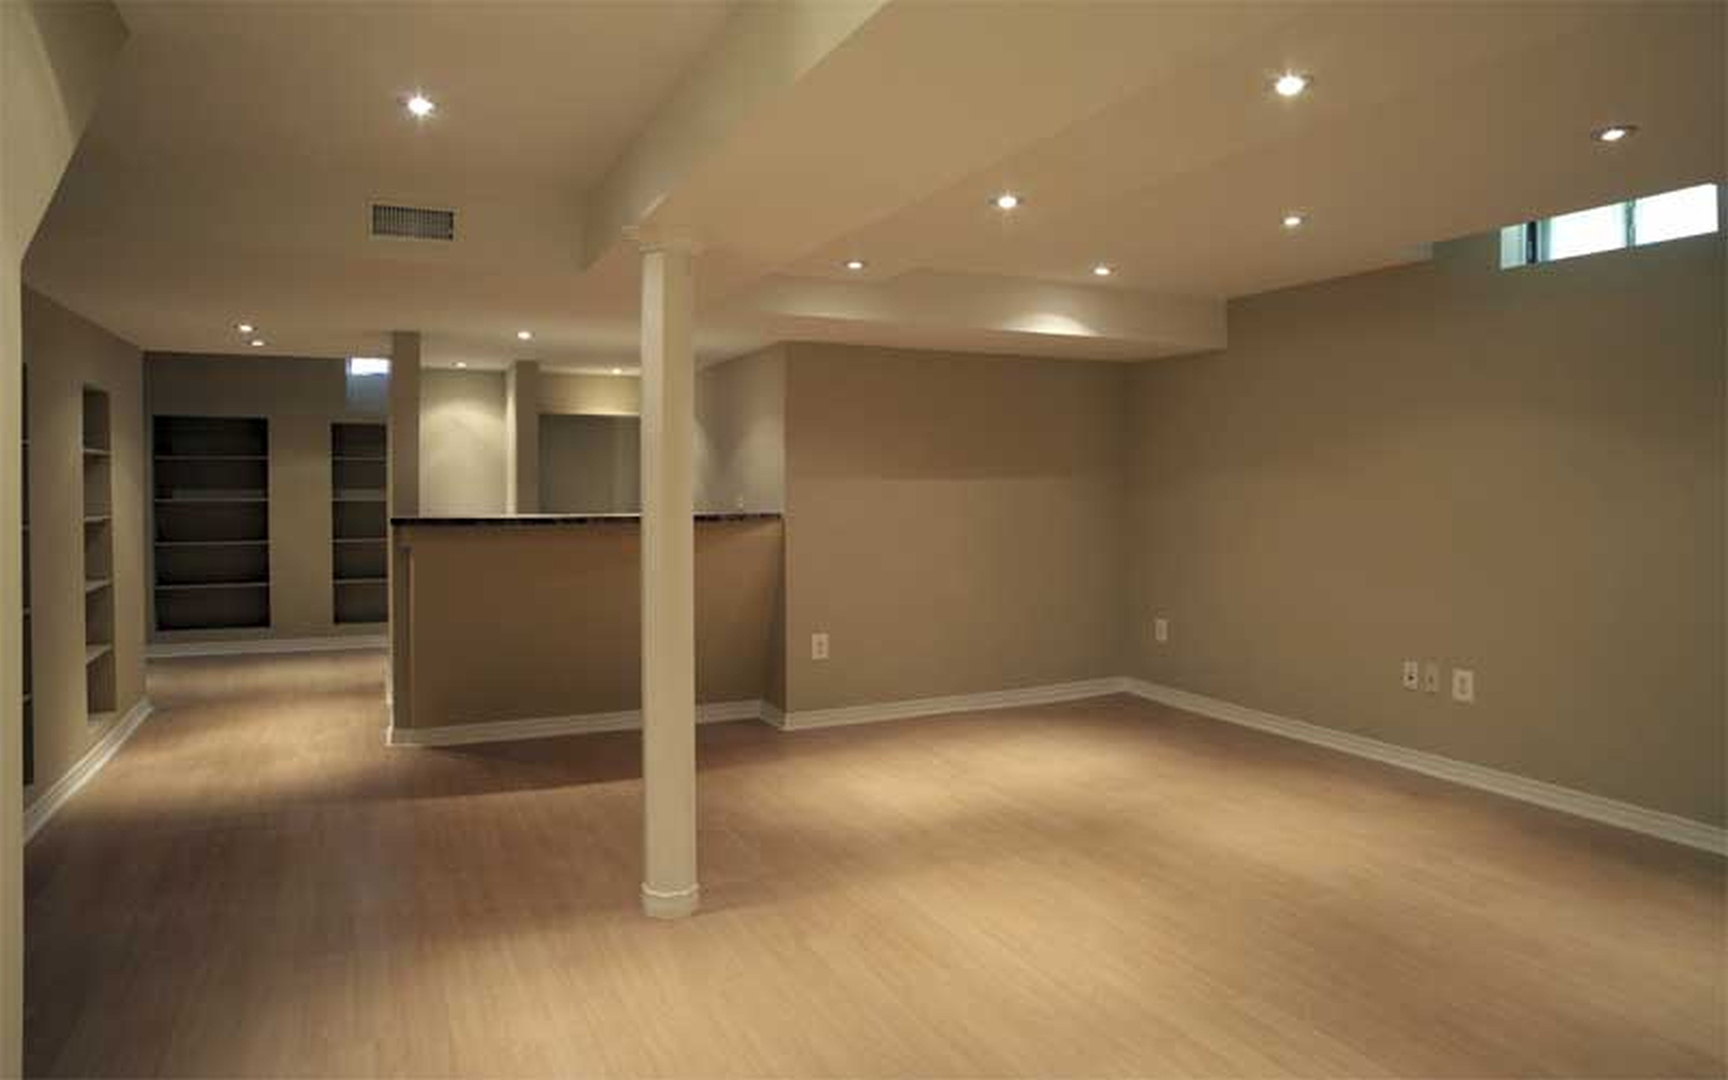 Basement Refinishing Ideas Property west orange nj 07052 basement remodeling & finishing contractor